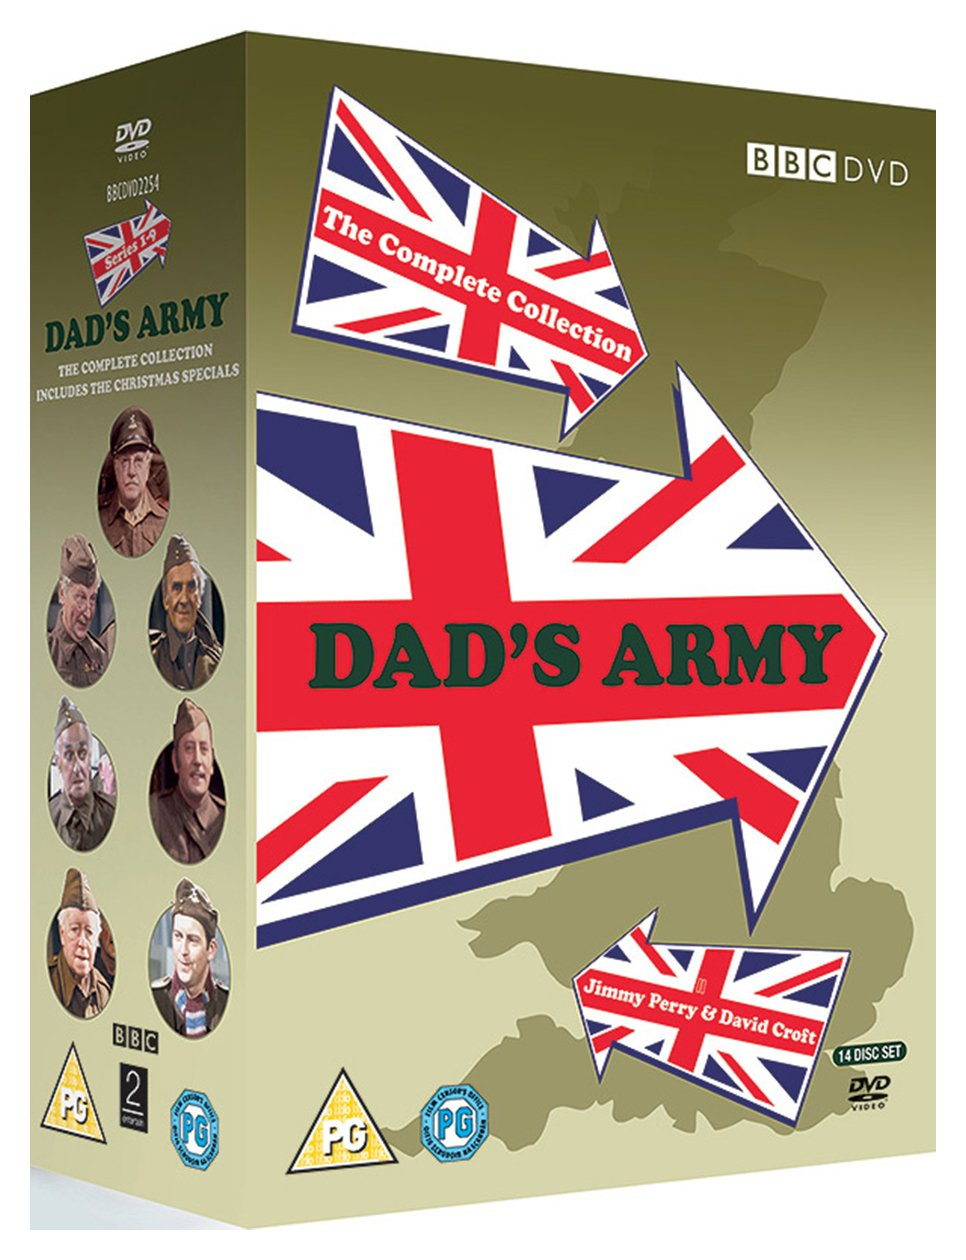 Dad's Army DVD.